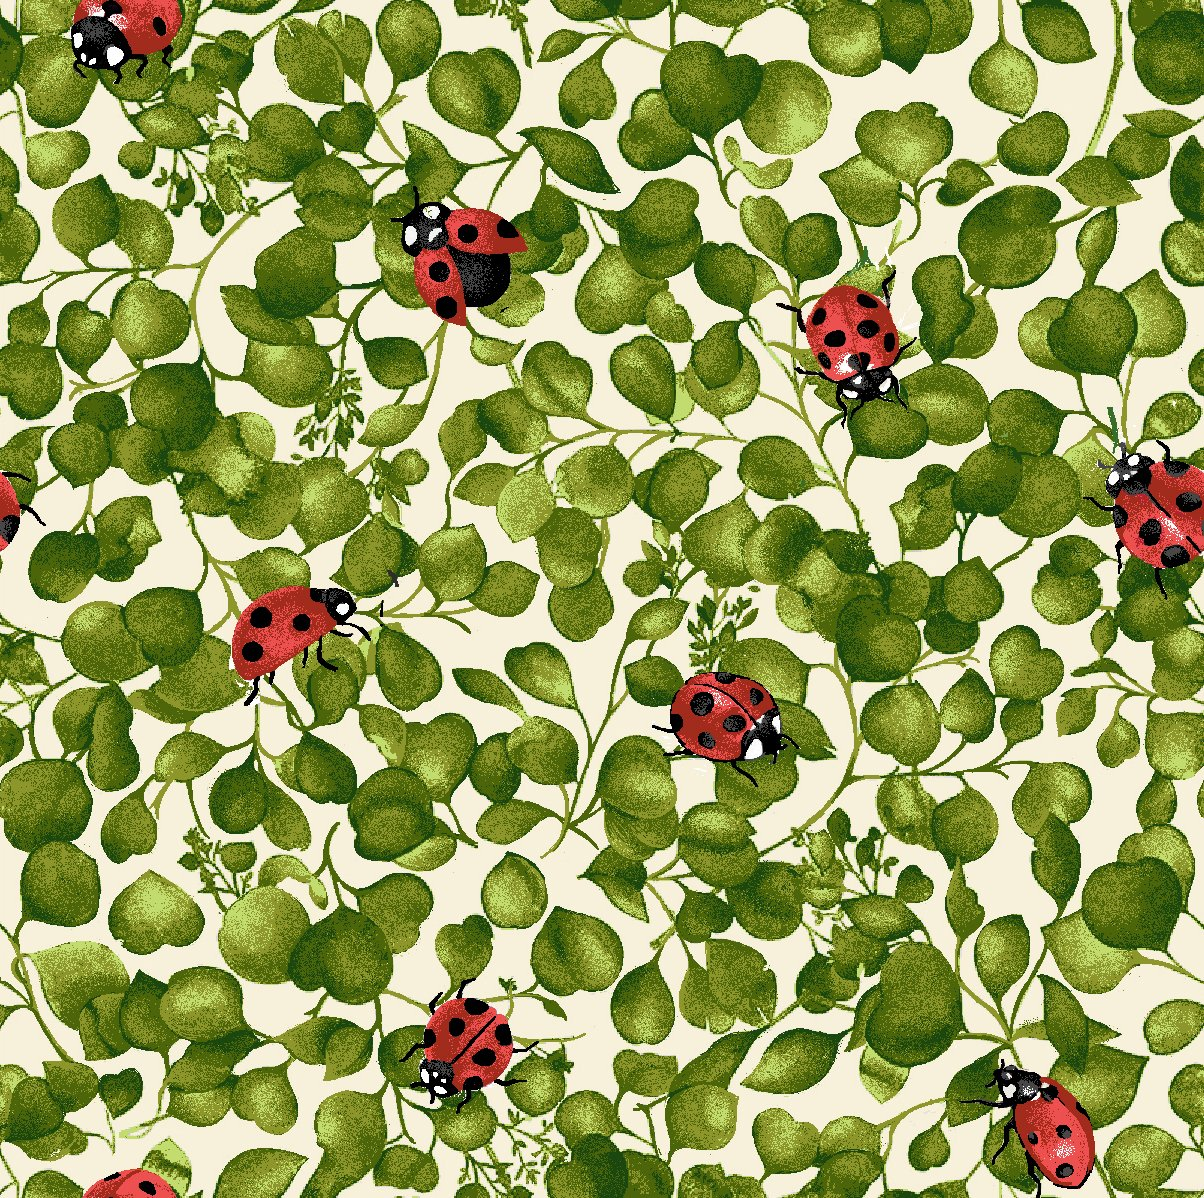 Forest Babies - Ladybugs